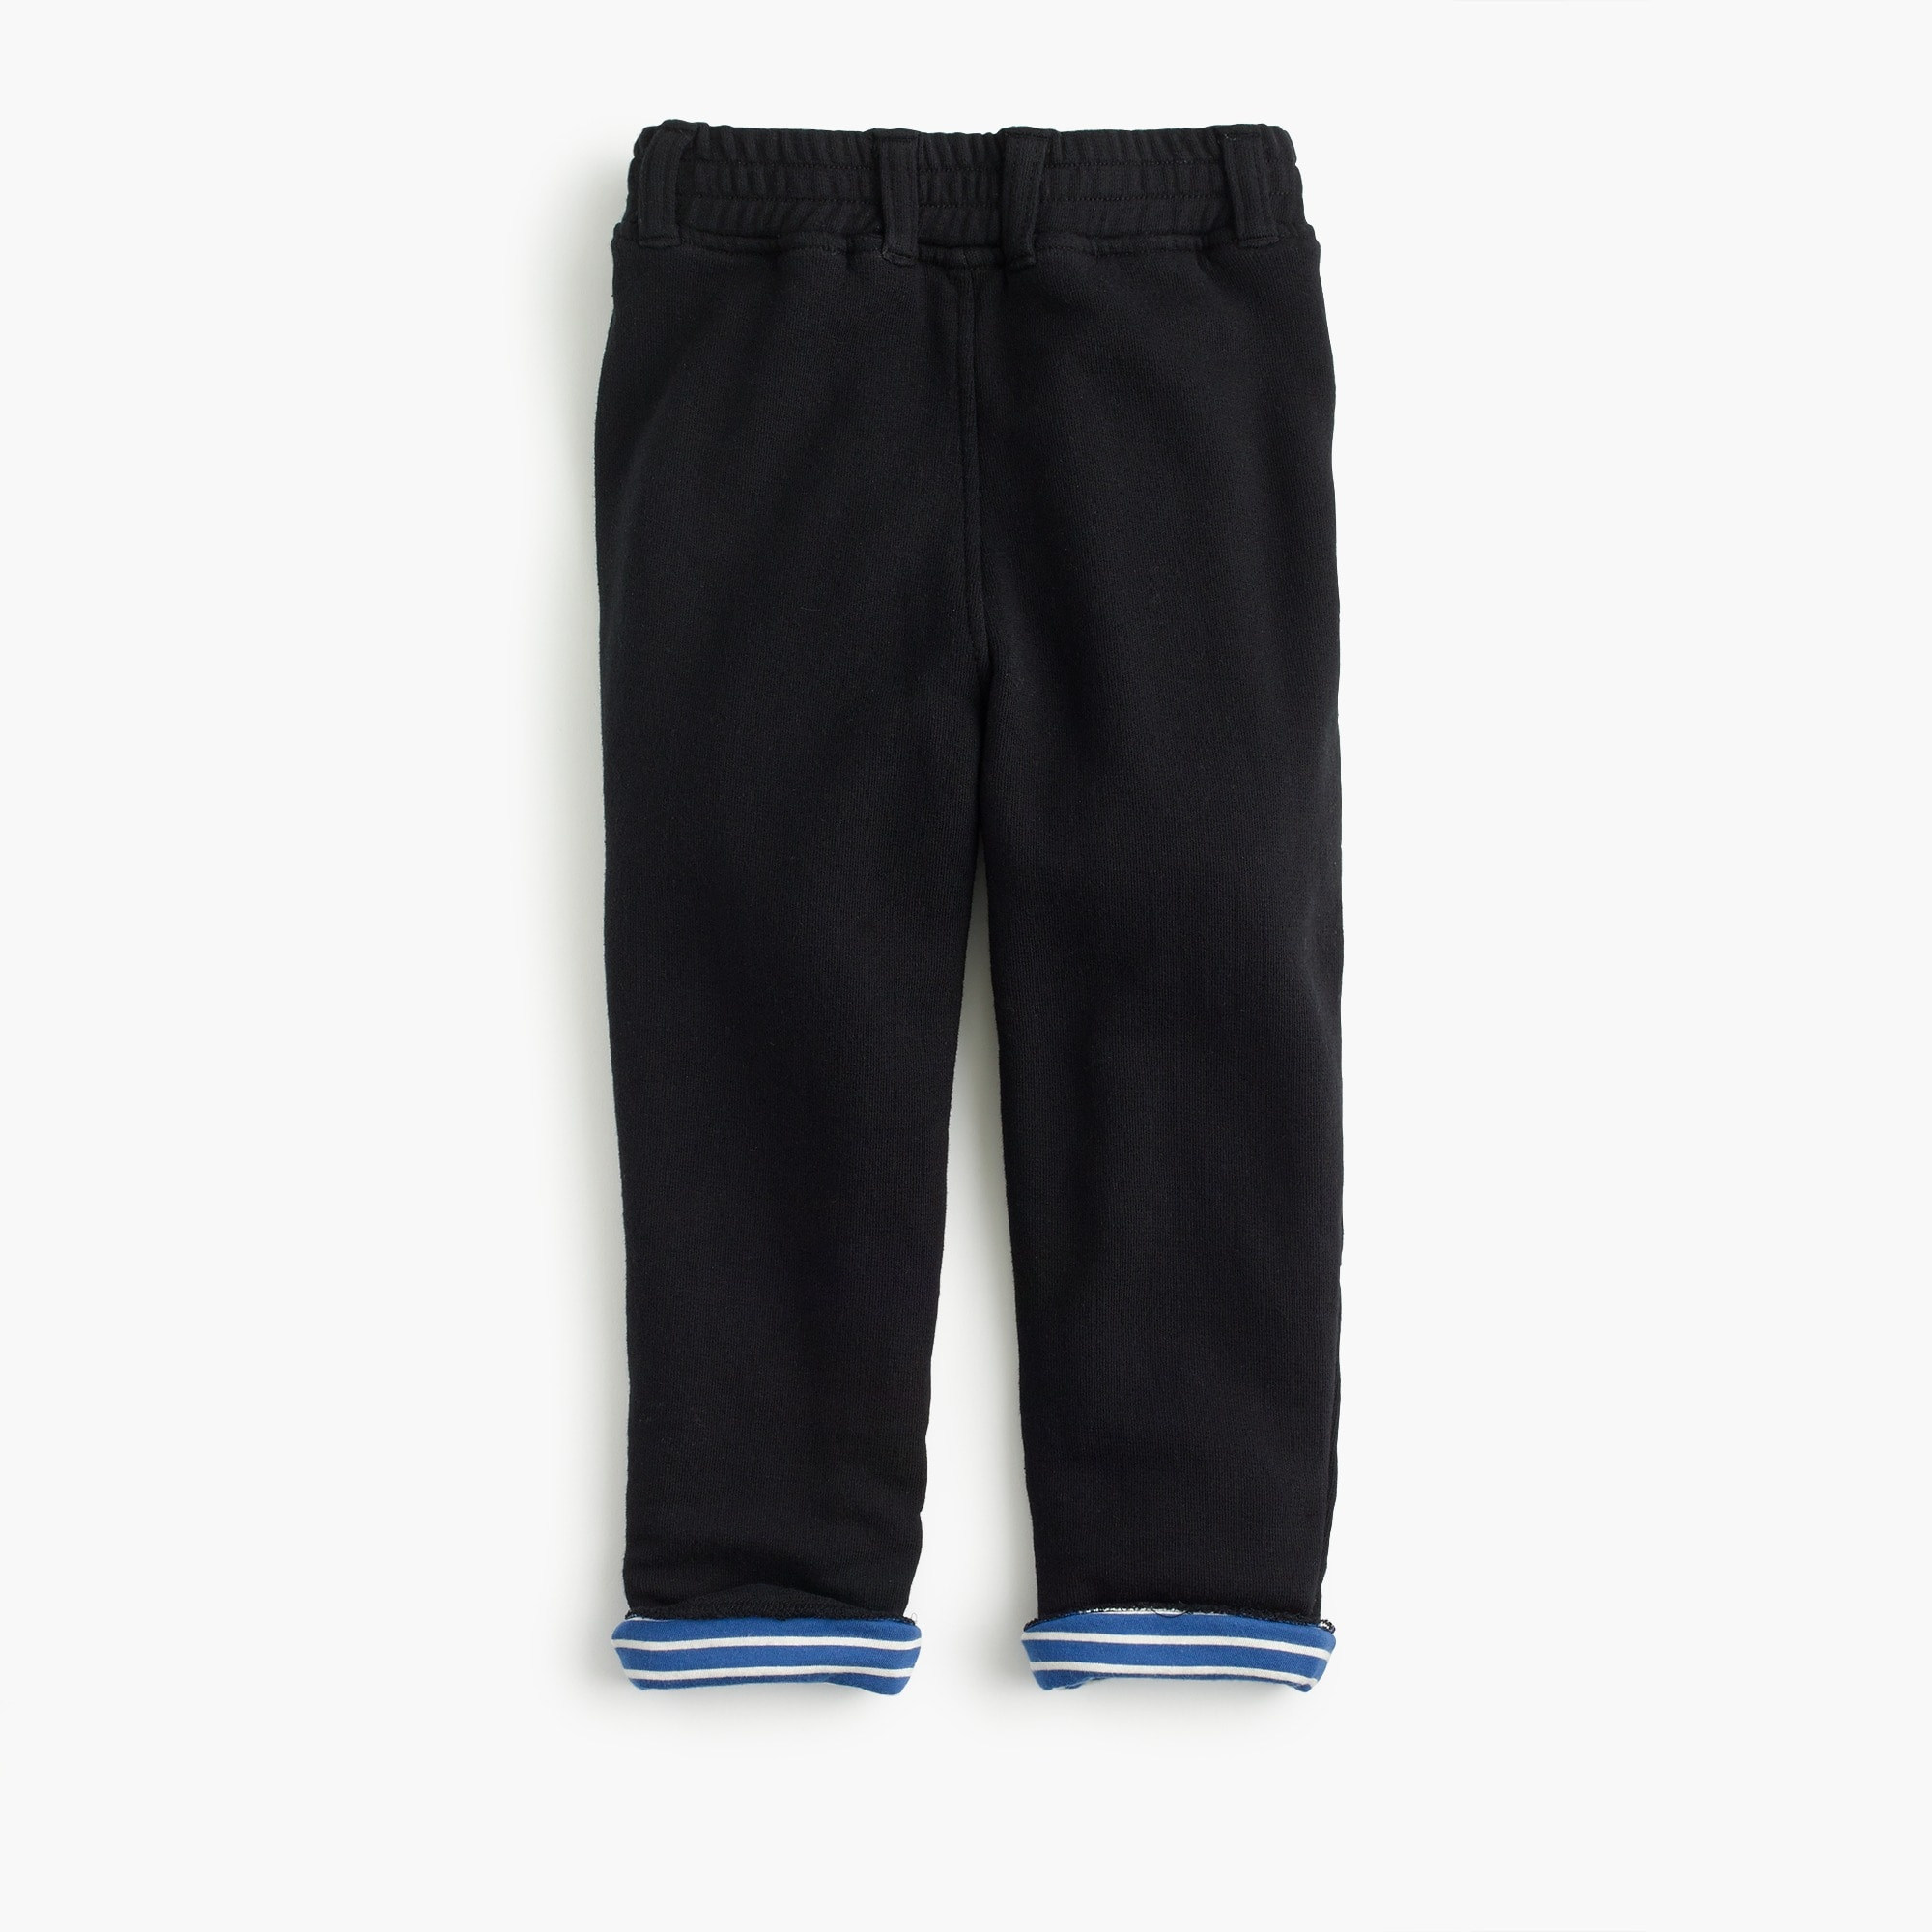 Image 3 for Boys' button-front stripe-lined sweatpants